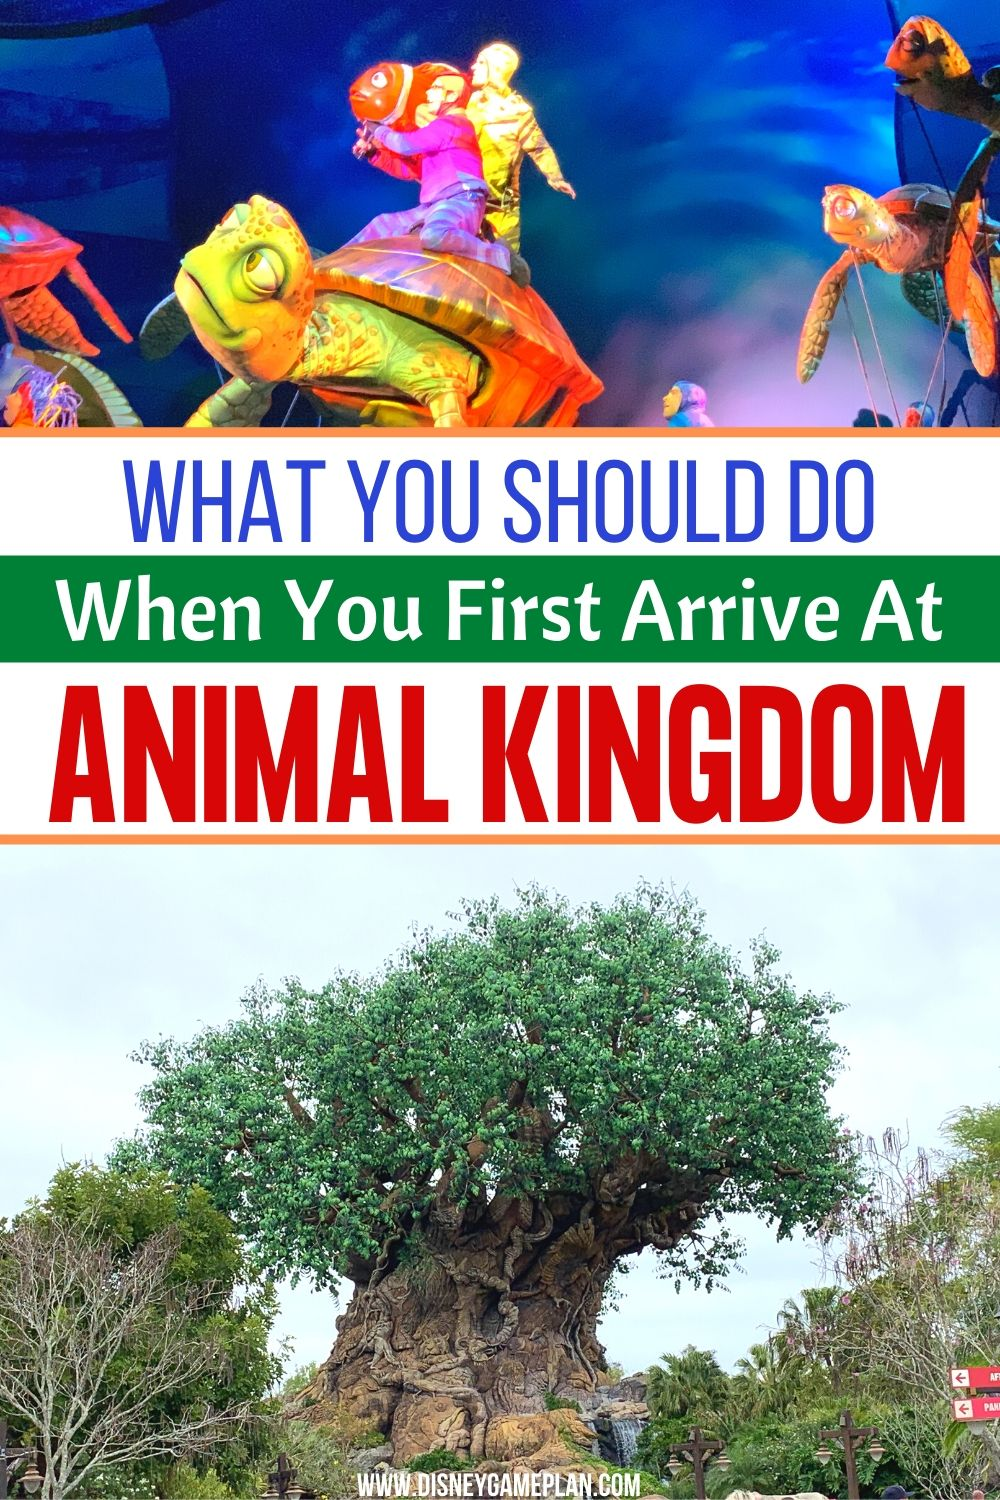 Disney's Animal Kingdom is by far the most unique park at Disney World. Follow these tips on What You Should Explore When you first arrive. Animal Kingdom at Disney World is a large park with so much to see and do. Checkout these helpful Animal Kingdom tips on what you should see and do as soon as you get there. #animalkingdom #disneyplanningtips #disneyworldhacks